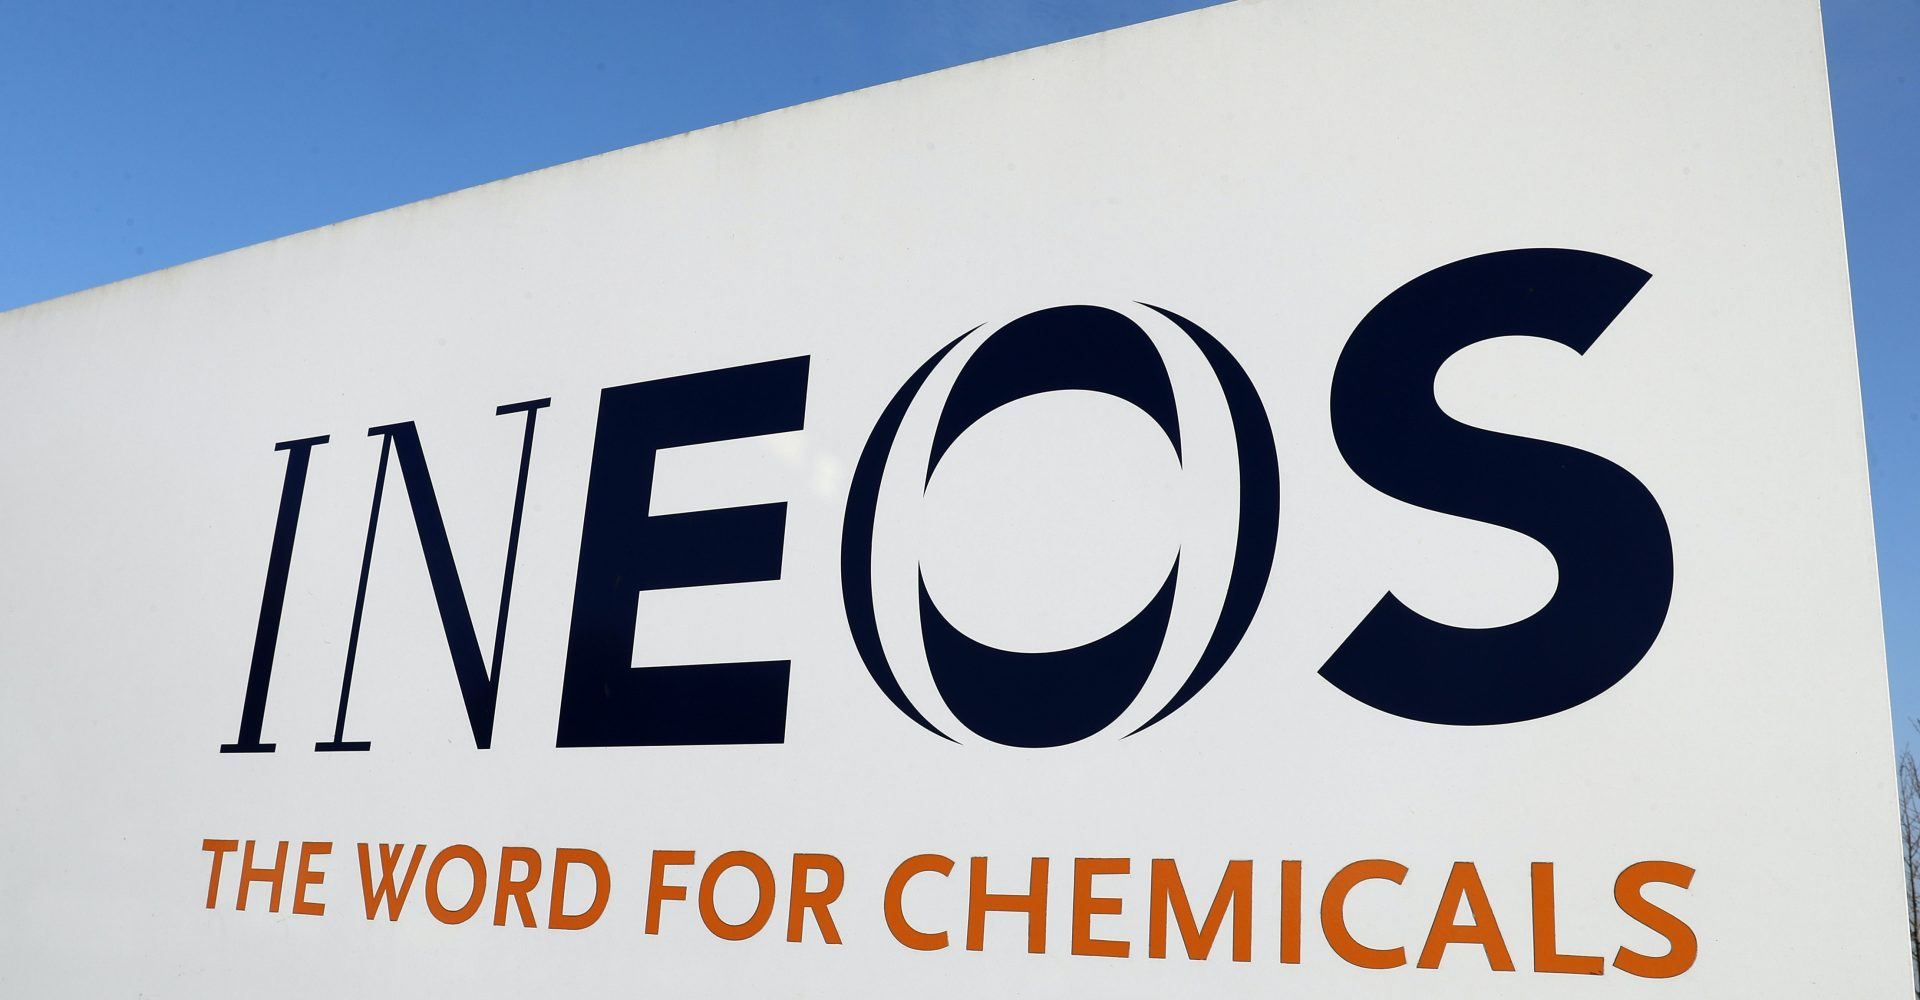 Hyundai and Ineos to co-operate on driving hydrogen economy forward